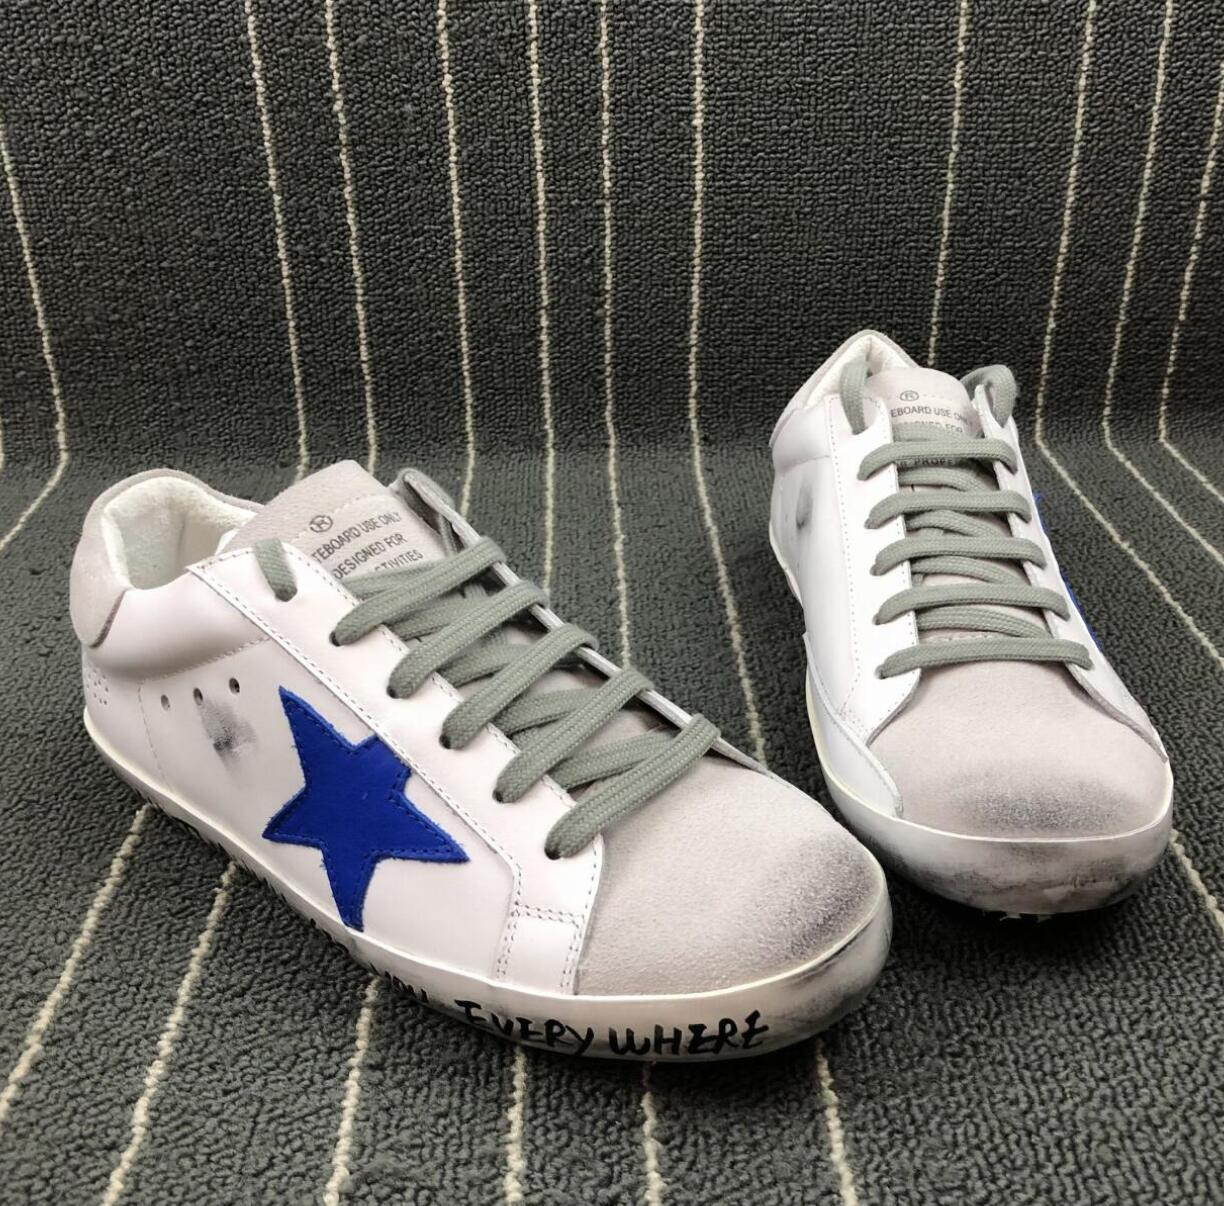 de80309d2149 Sale Sneakers Geox Dquhfu 9 R Shoes For 79bhmen Women Golden Goose Ggdb Old  Dirty Style Sneakers Black White Genuine Leather Casual Shoe Green Shoes  Most ...